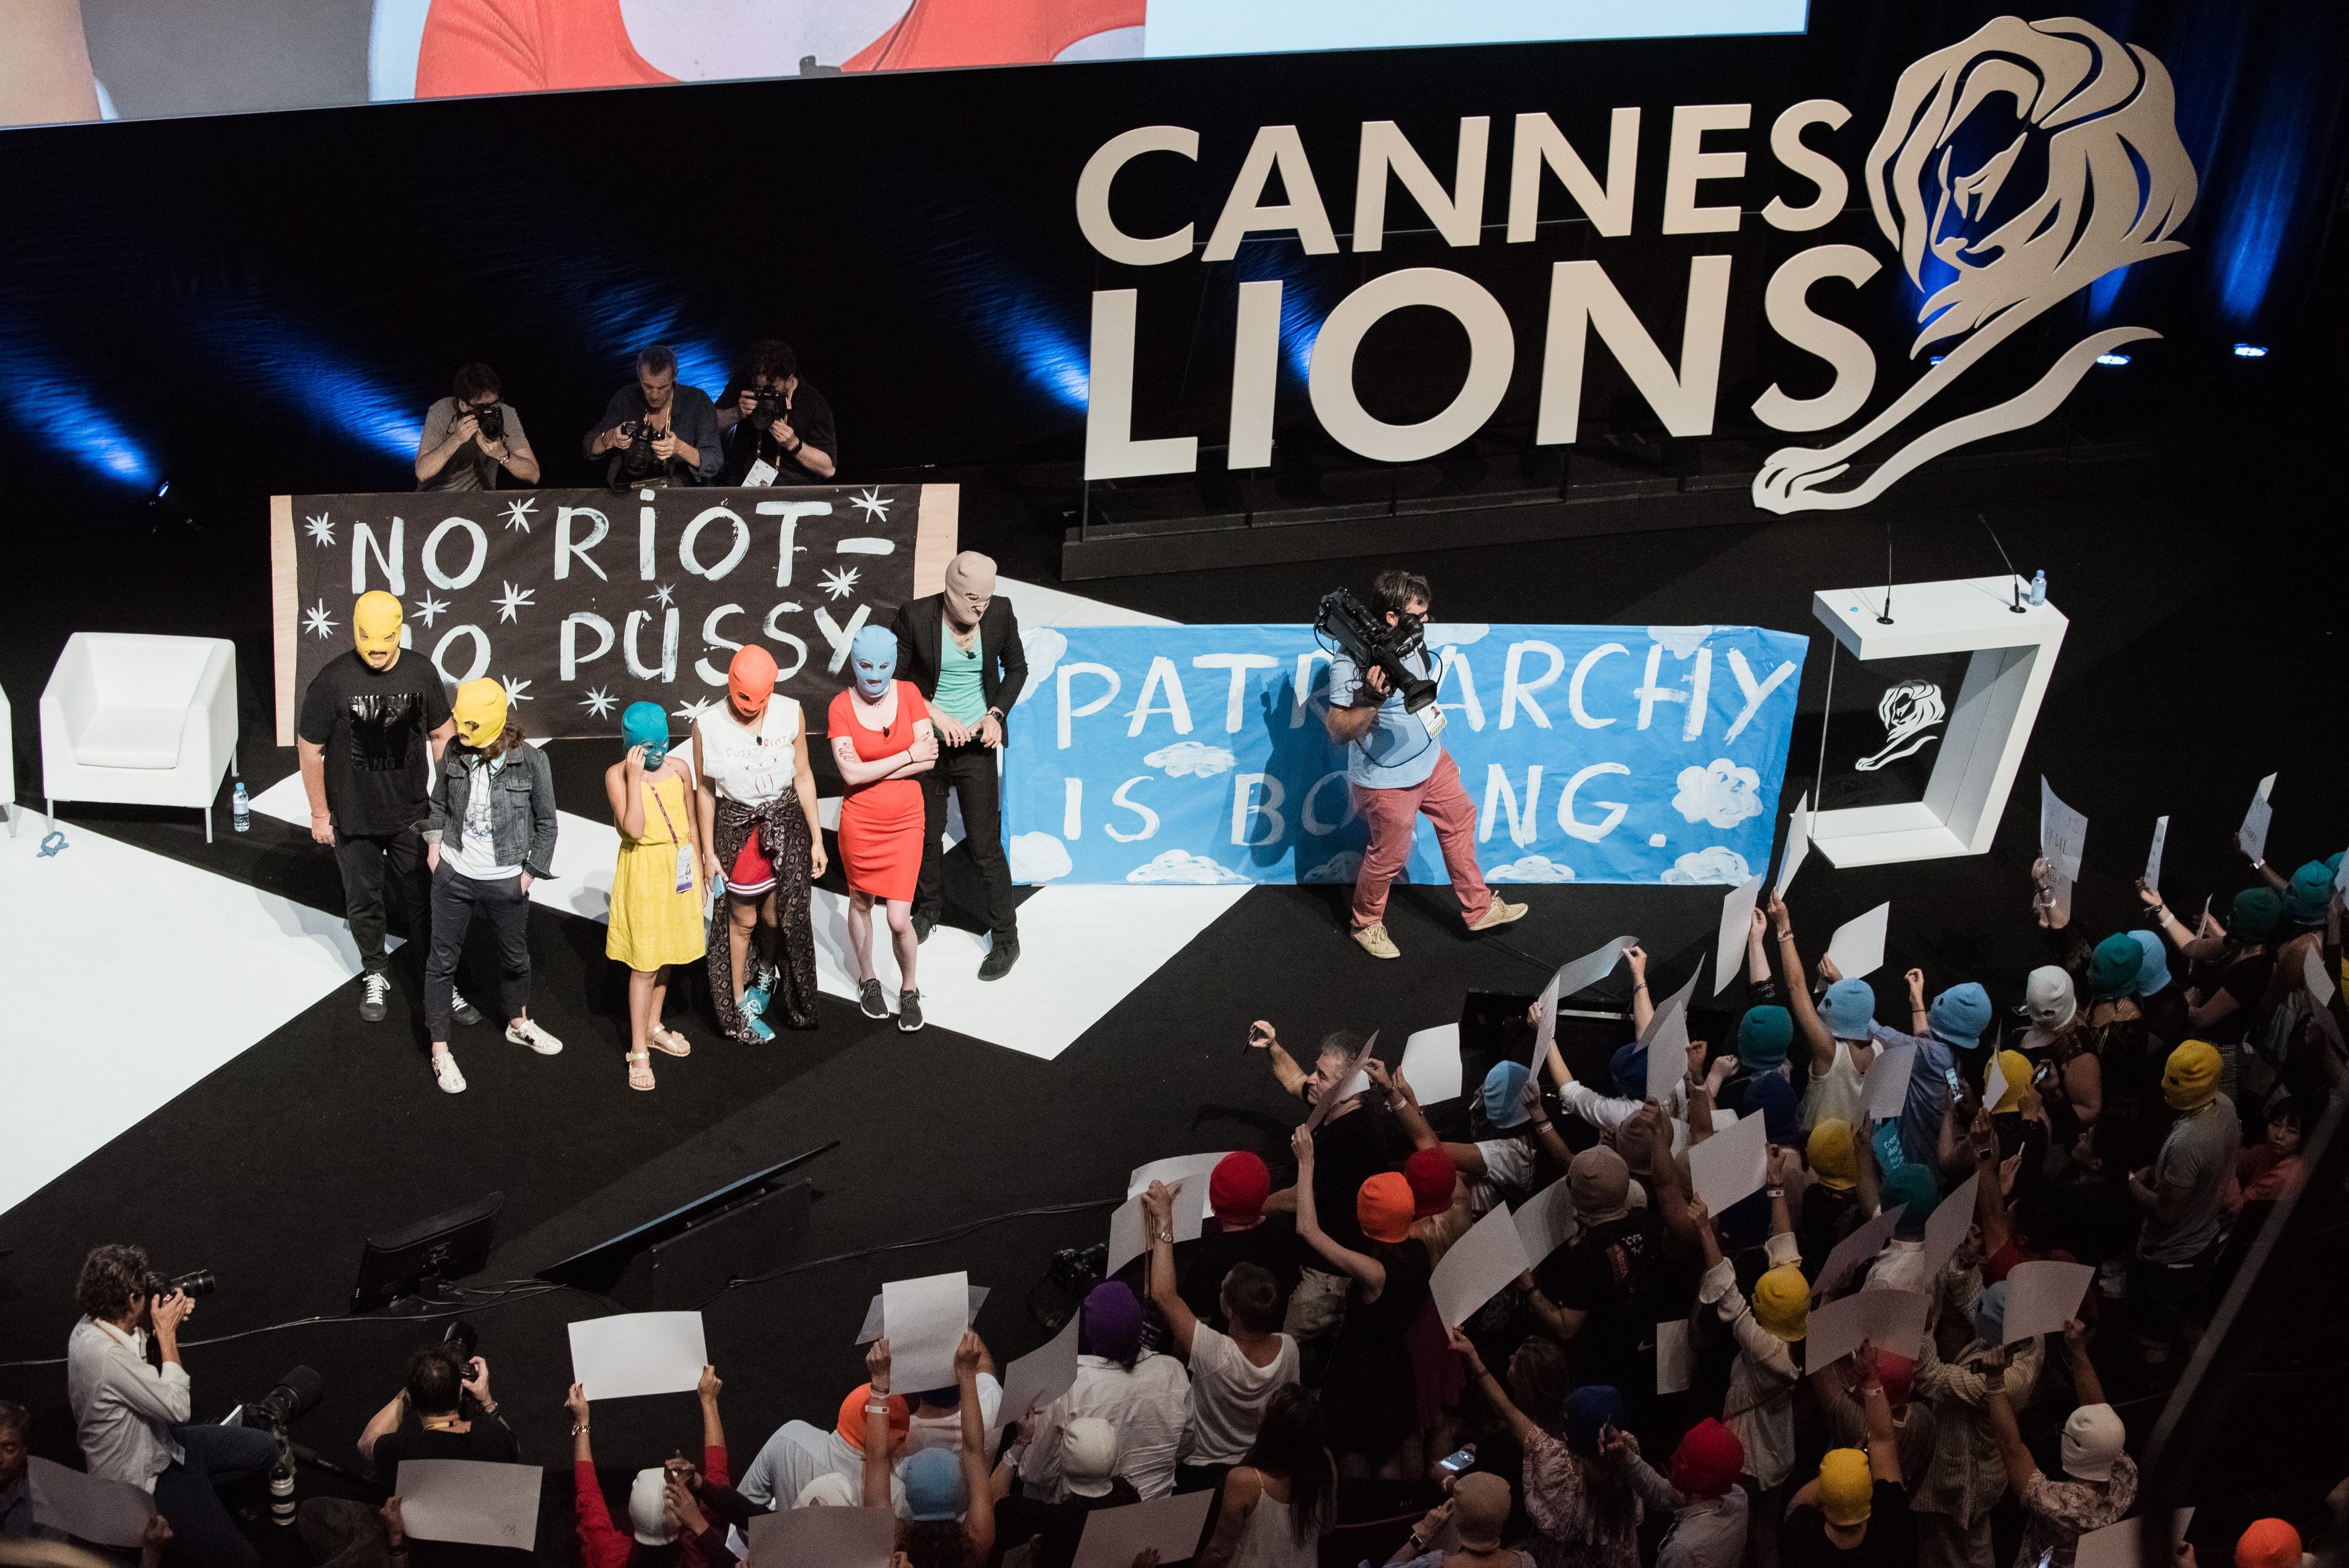 Cannes Lions Festival 2017: Day 6